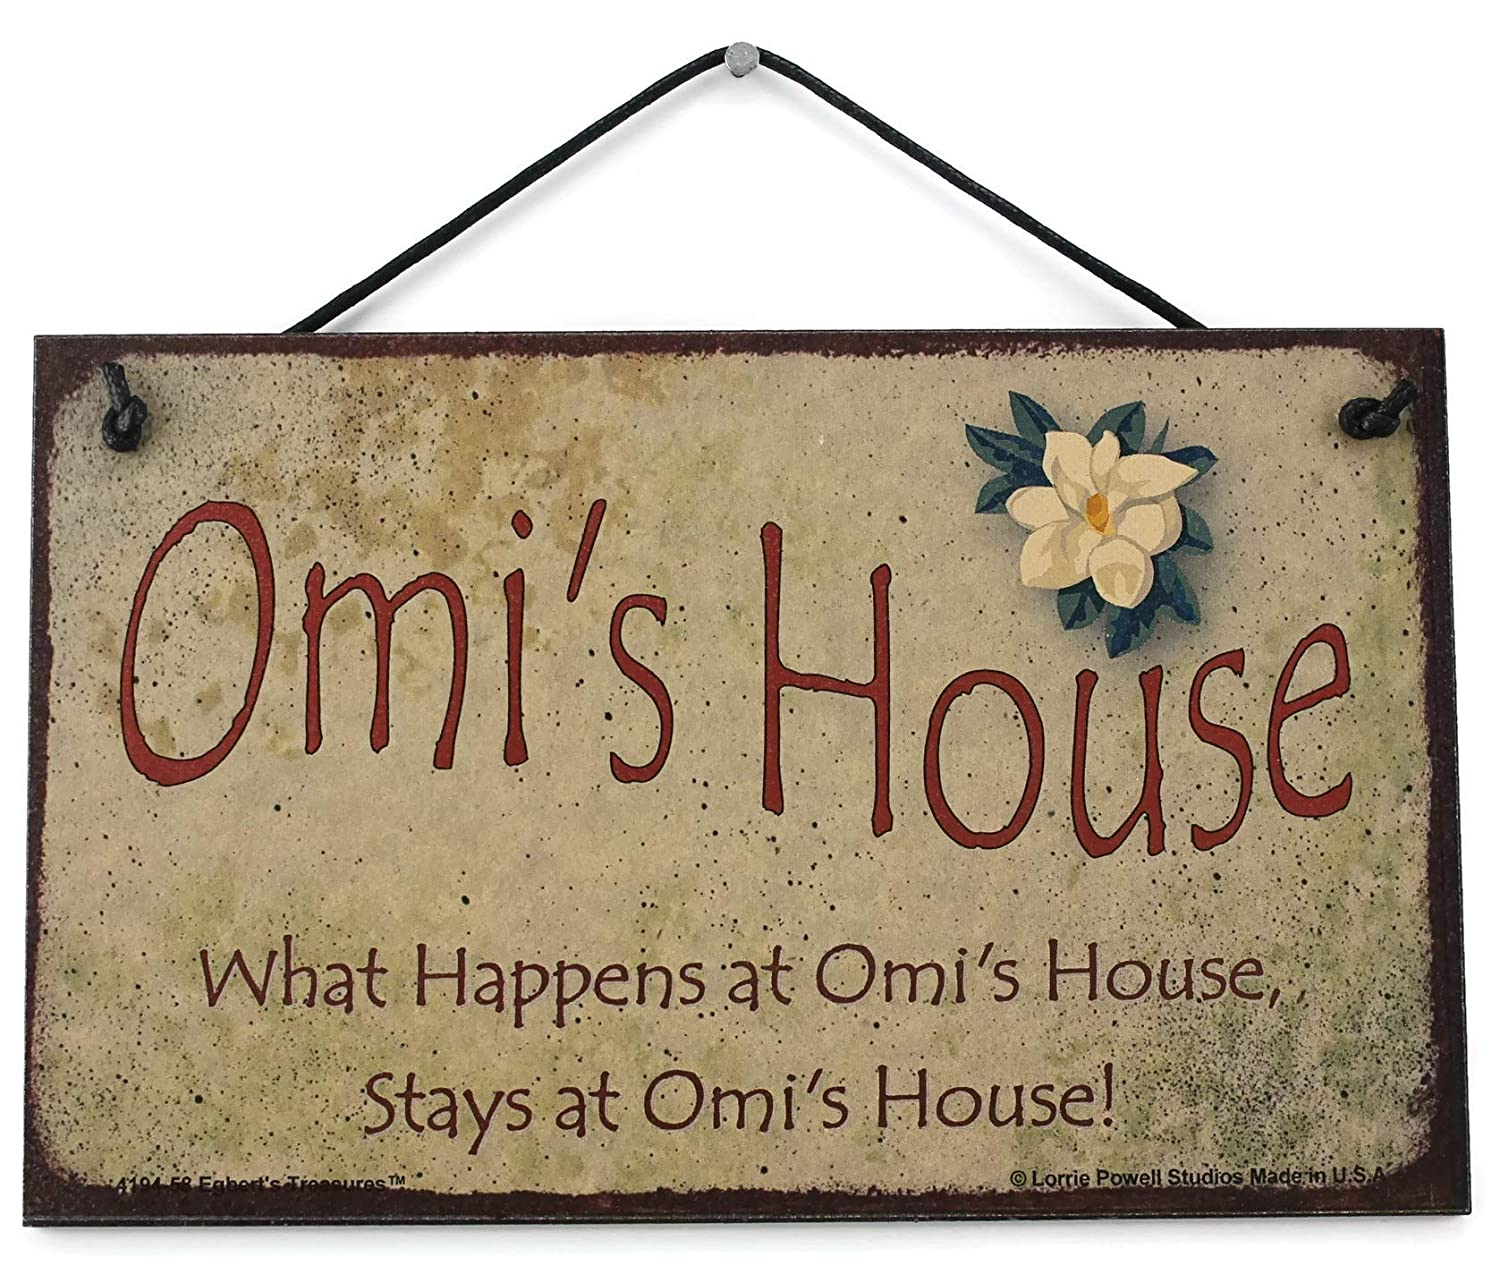 Decorative Fun Universal Household Signs from Stays at Omis House Omis House What Happens at Omis House Egberts Treasures 5x8 Vintage Style Sign with Magnolia Saying